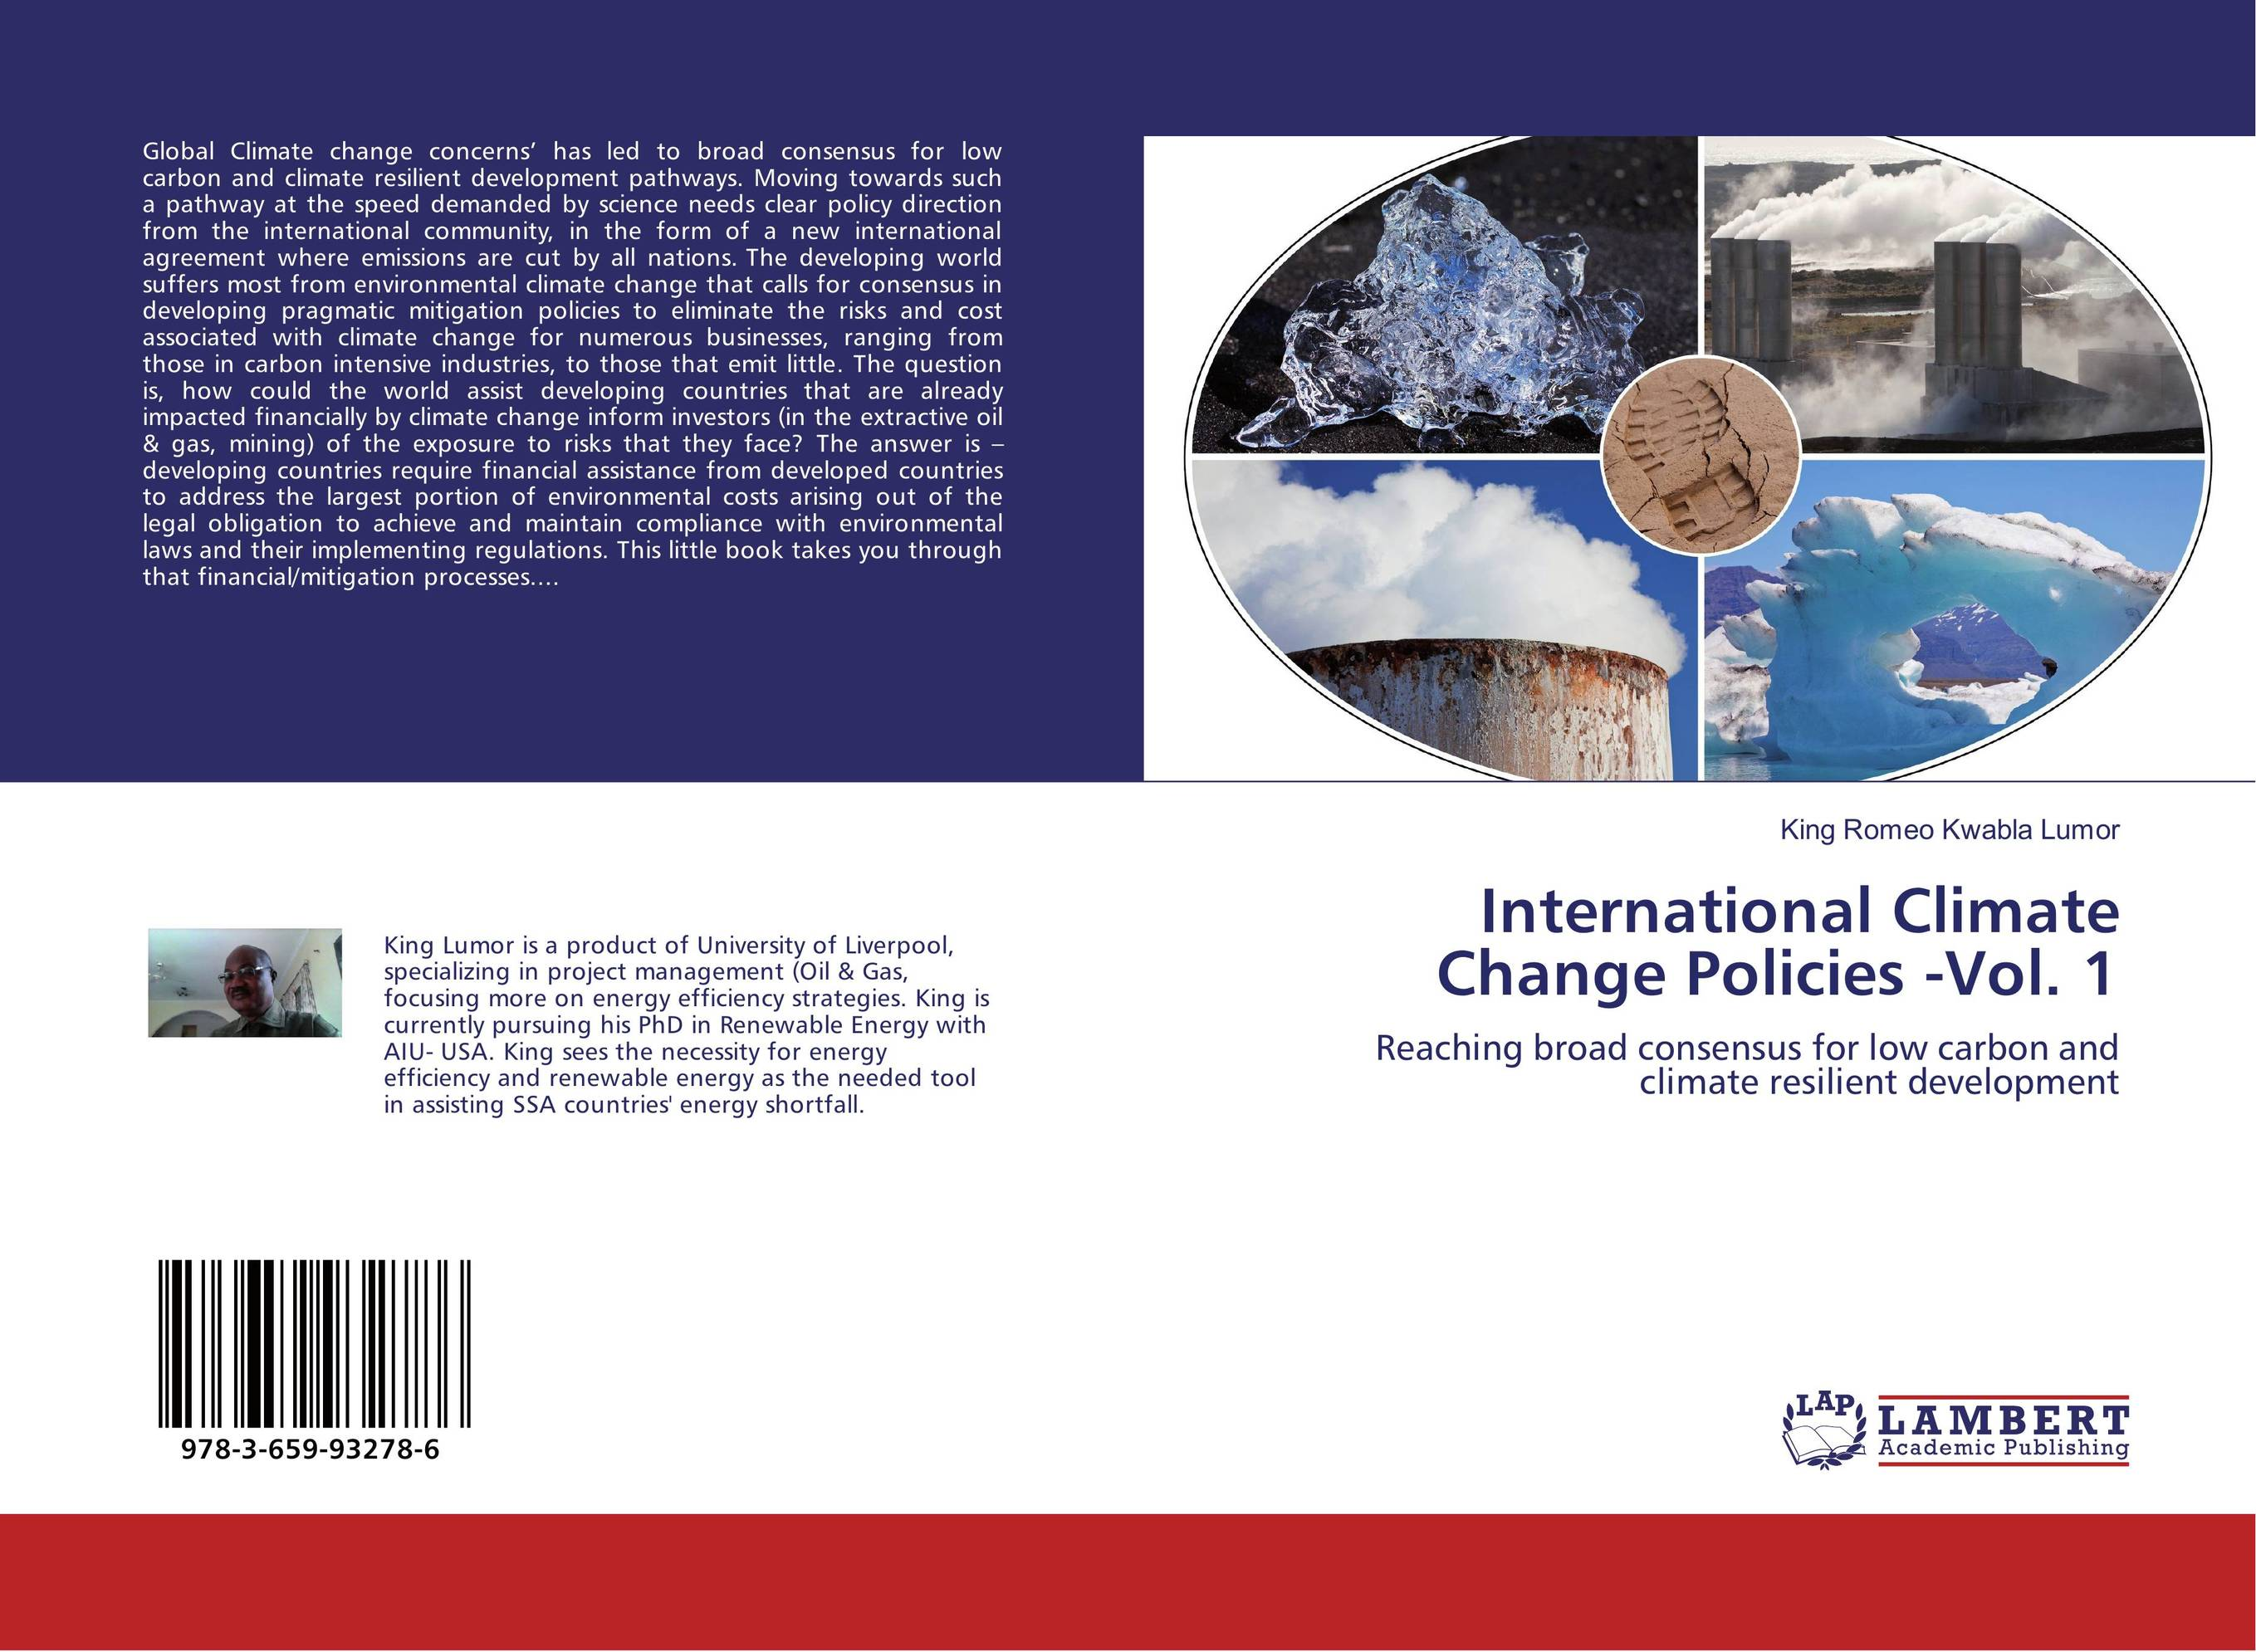 an empirical analysis of environmental impact The impact of trade on environmental quality has received a considerable attention, both in policy debate and in theoretical literature however, the empirical evidence on the topic remains lagged.